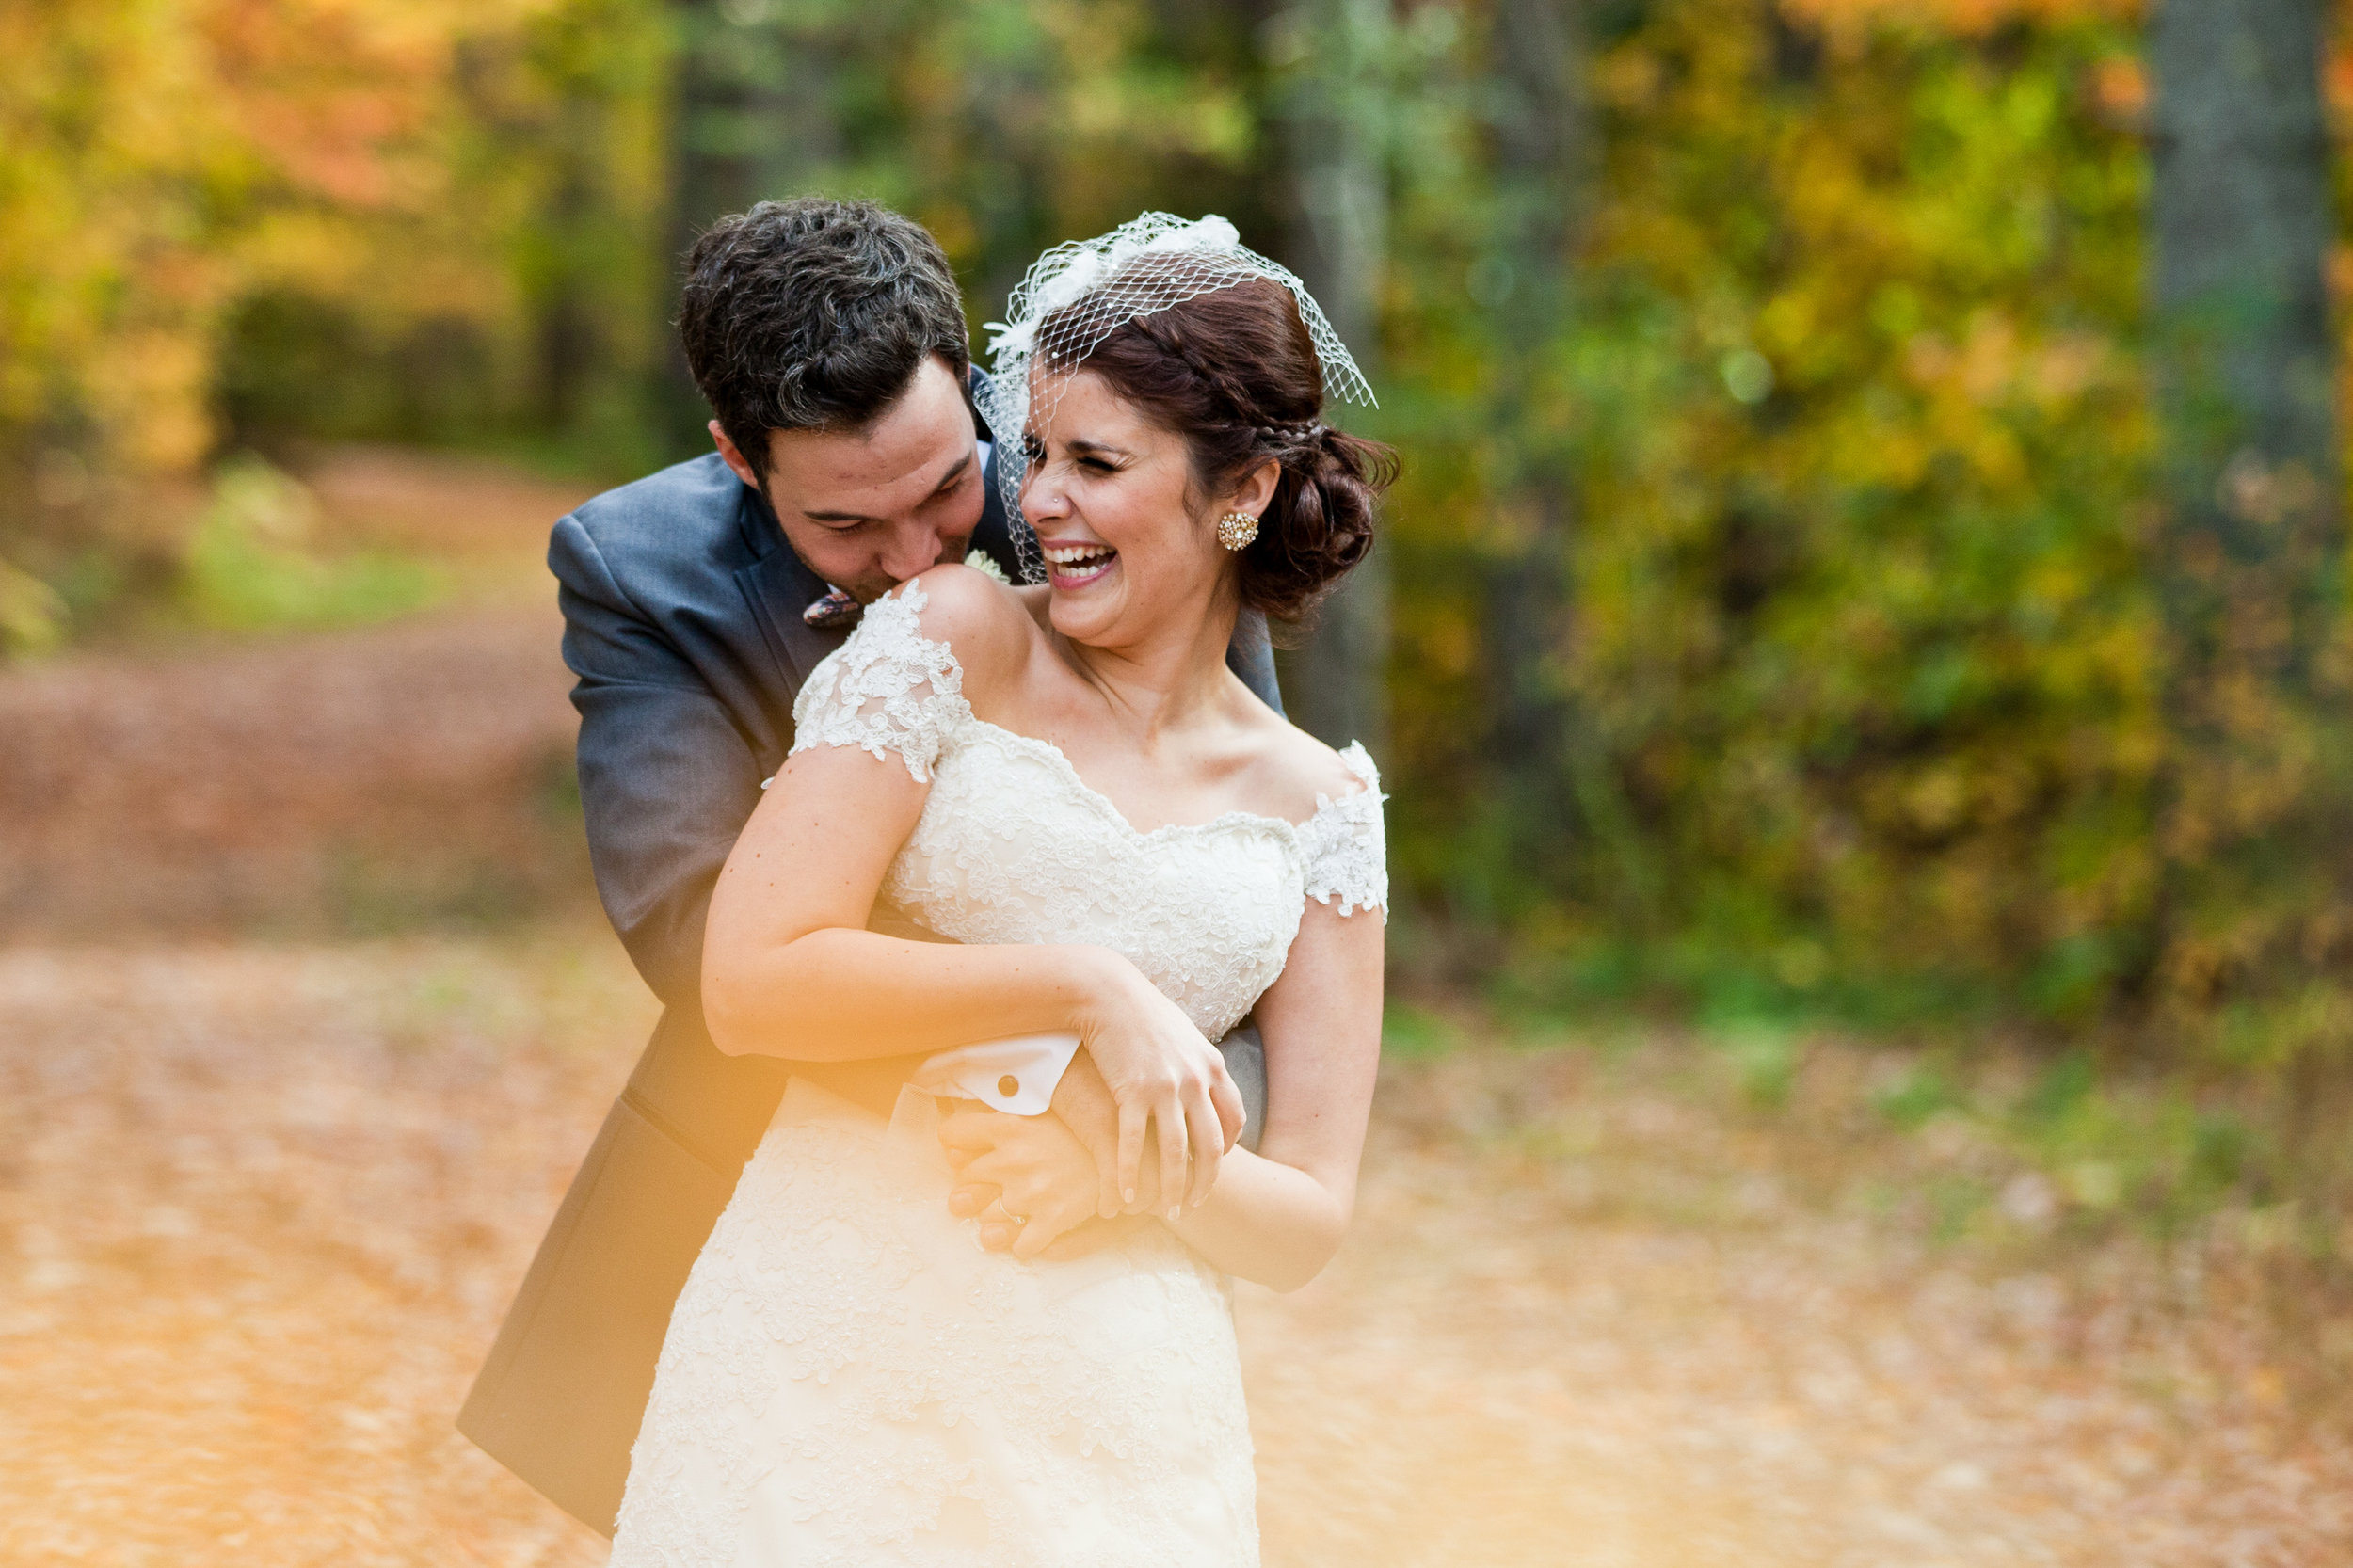 moncton_wedding_photographer_caro_photo-25.jpg